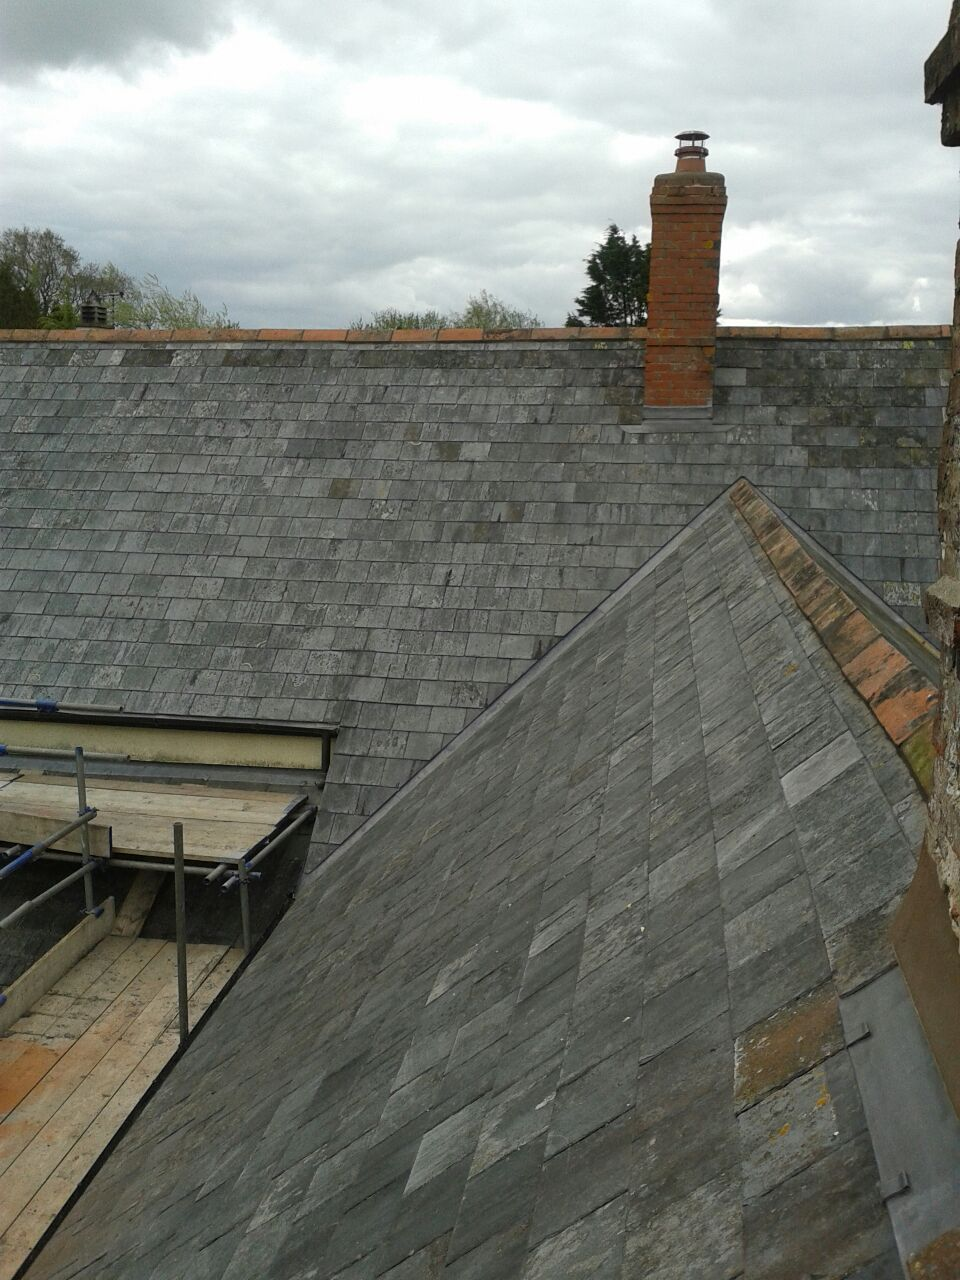 Reclaimed welsh slates Tiverton